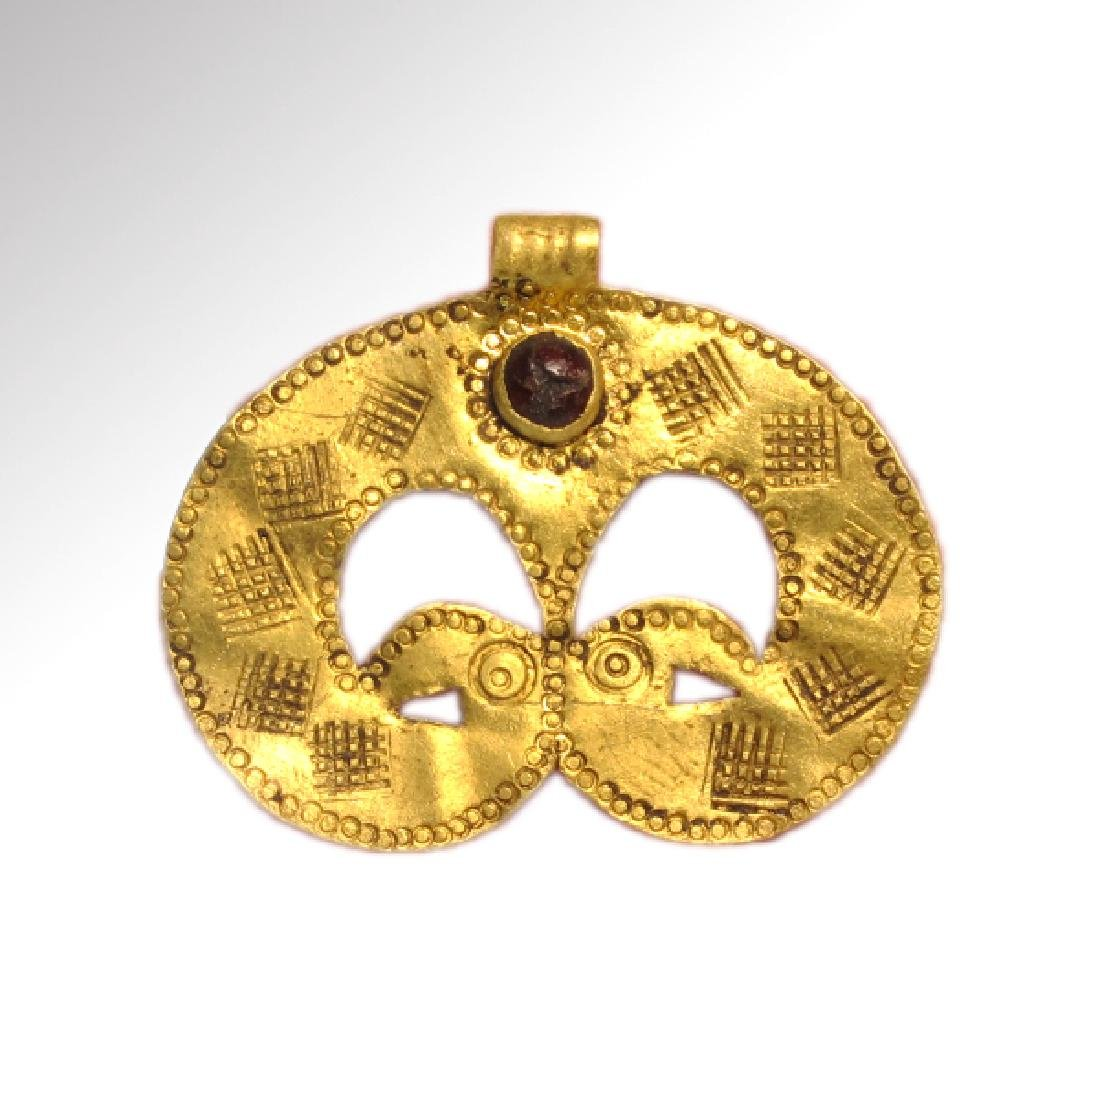 Migration Period Gold Pendant with Bird-Head